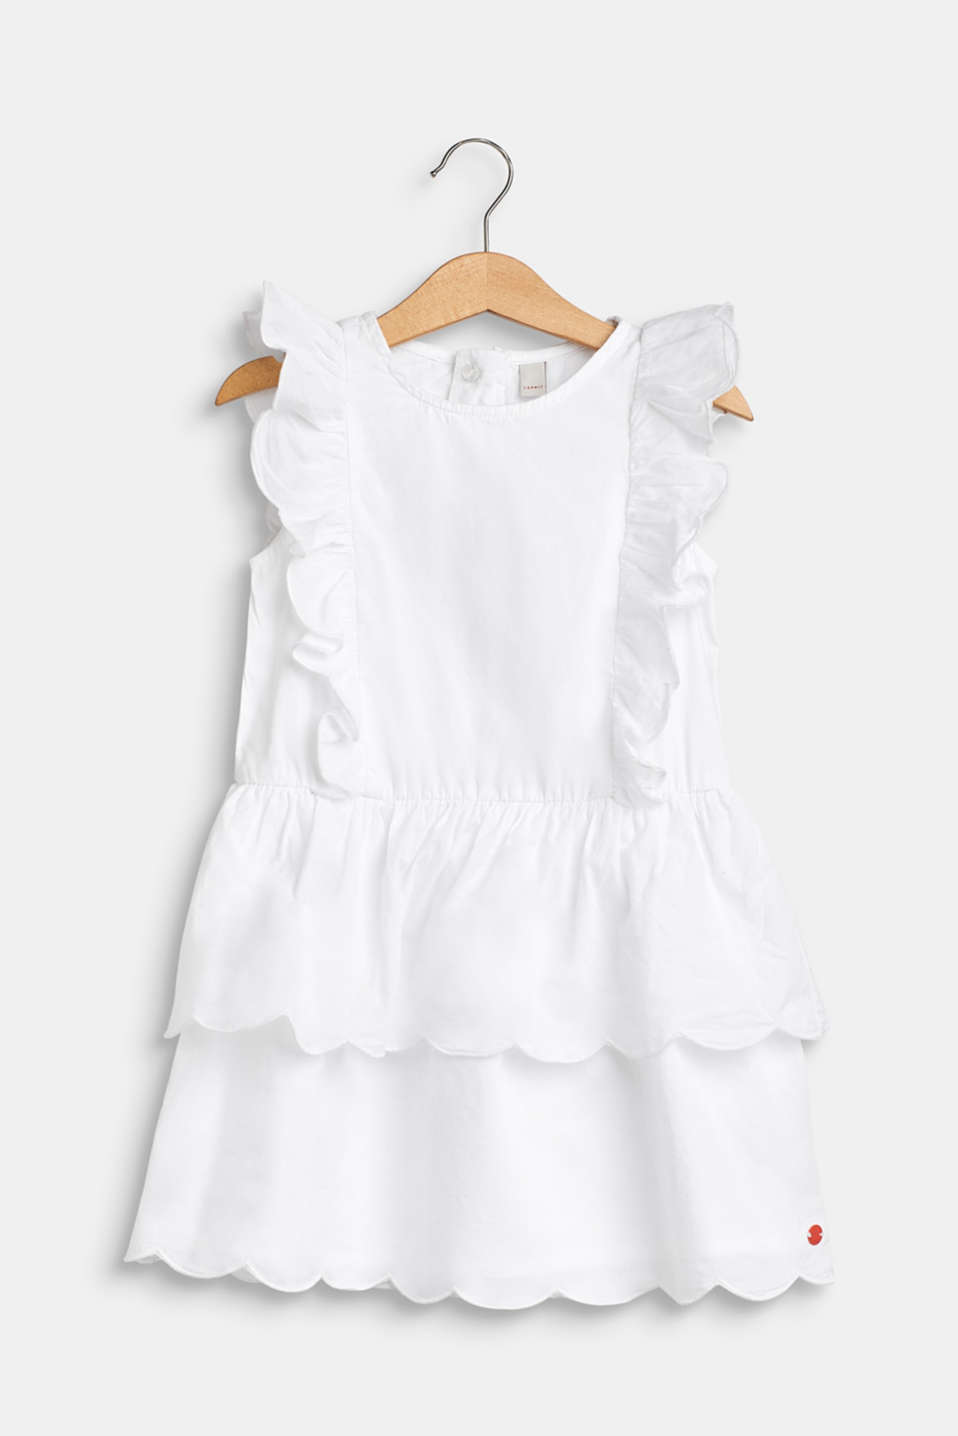 Esprit - Dress with flounce details, 100% cotton